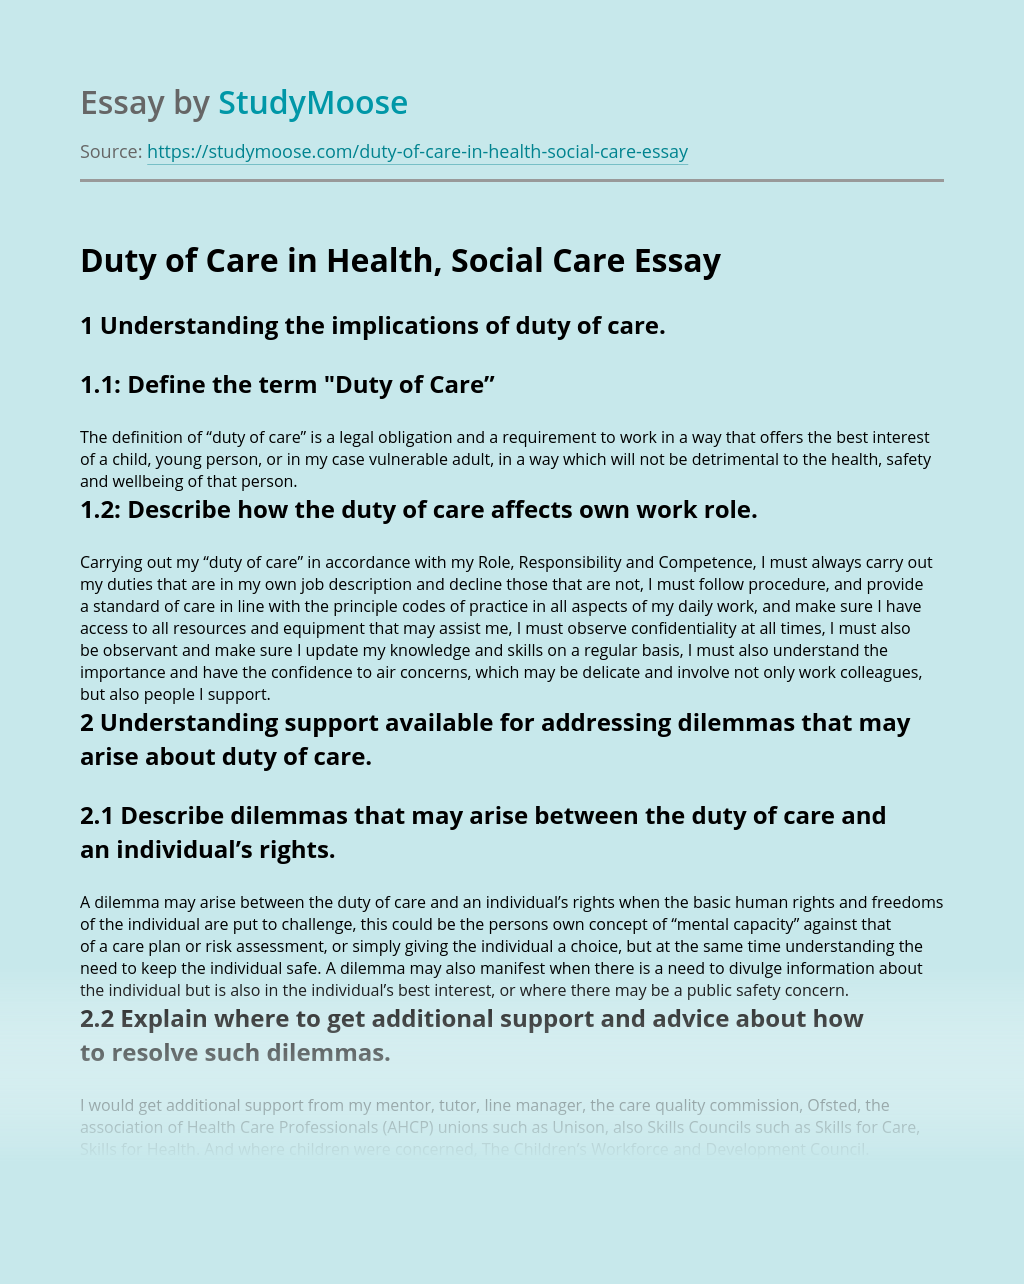 Duty of Care in Health, Social Care